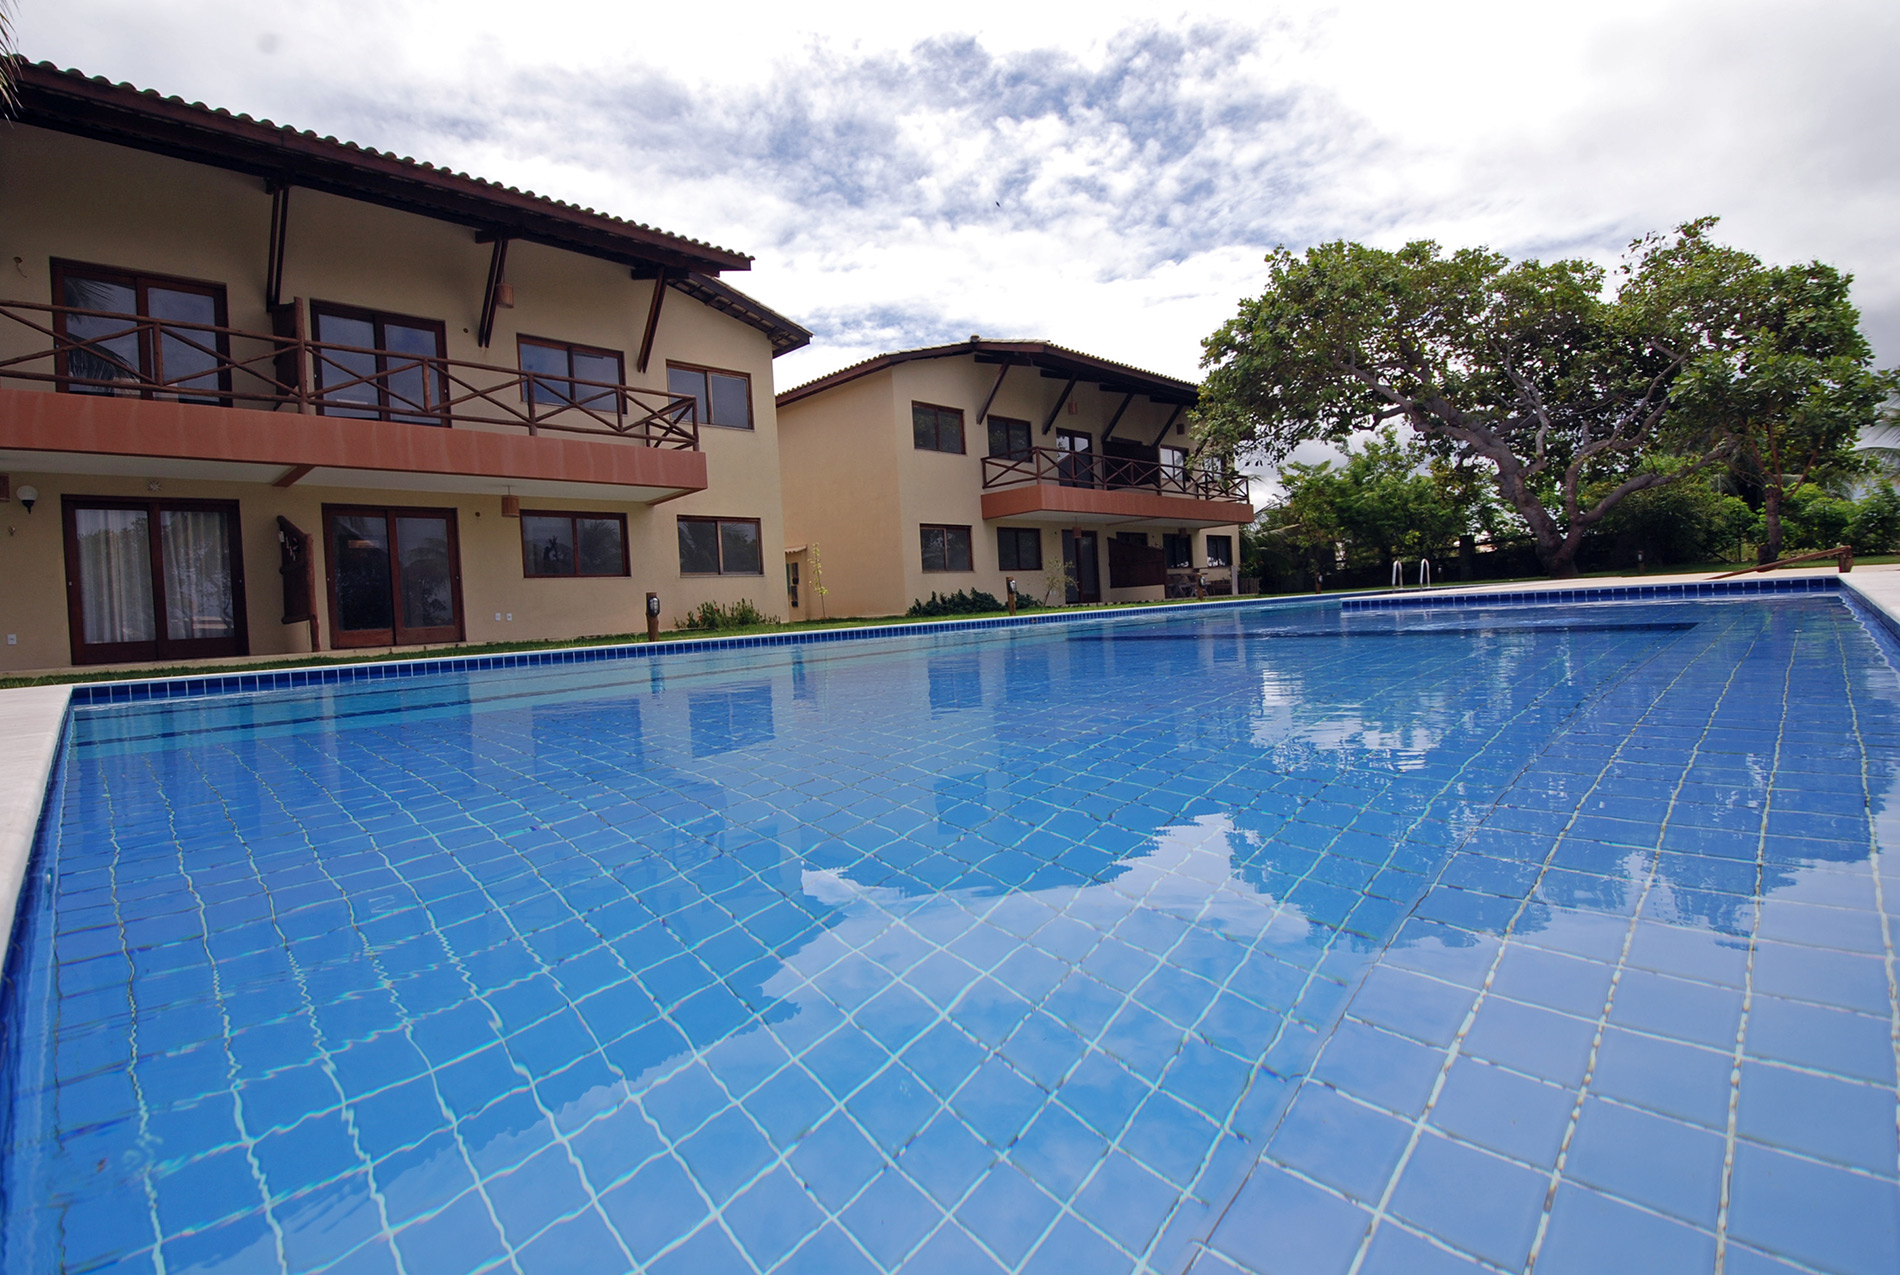 Home with lake view for sale in Itacimirim